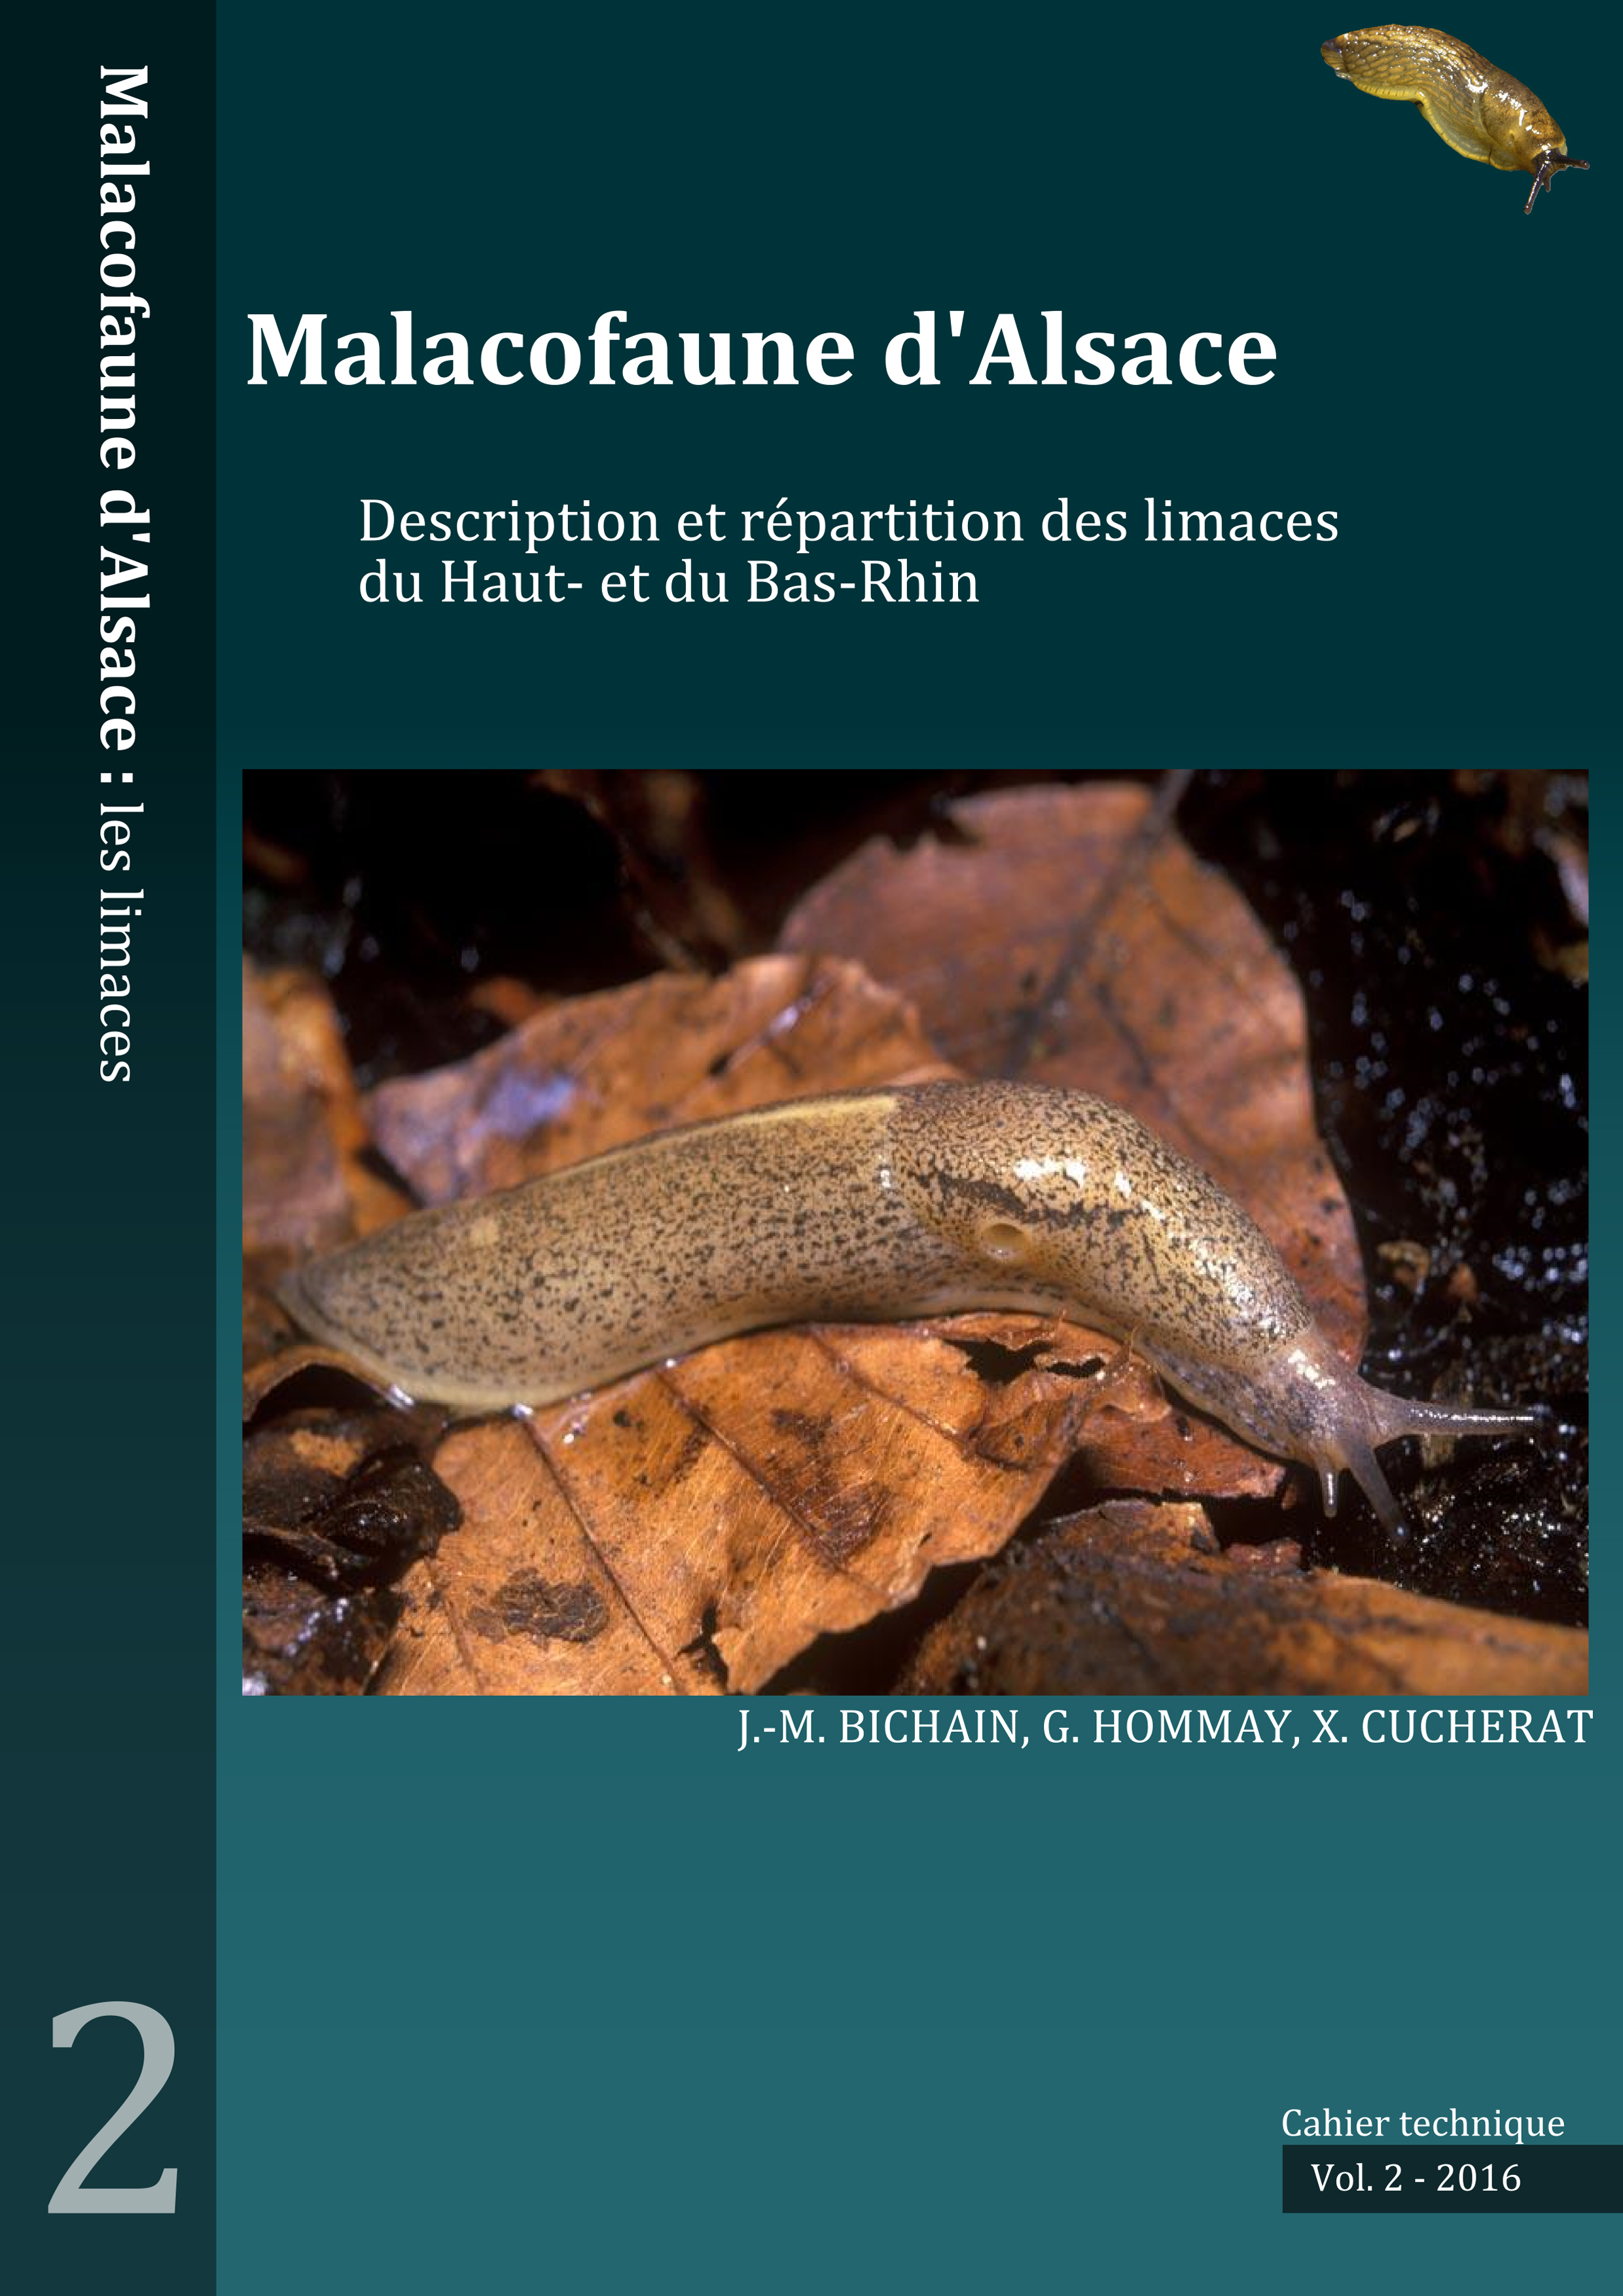 https://cdnfiles1.biolovision.net/www.faune-alsace.org/userfiles/mollusques/limace2016.jpg